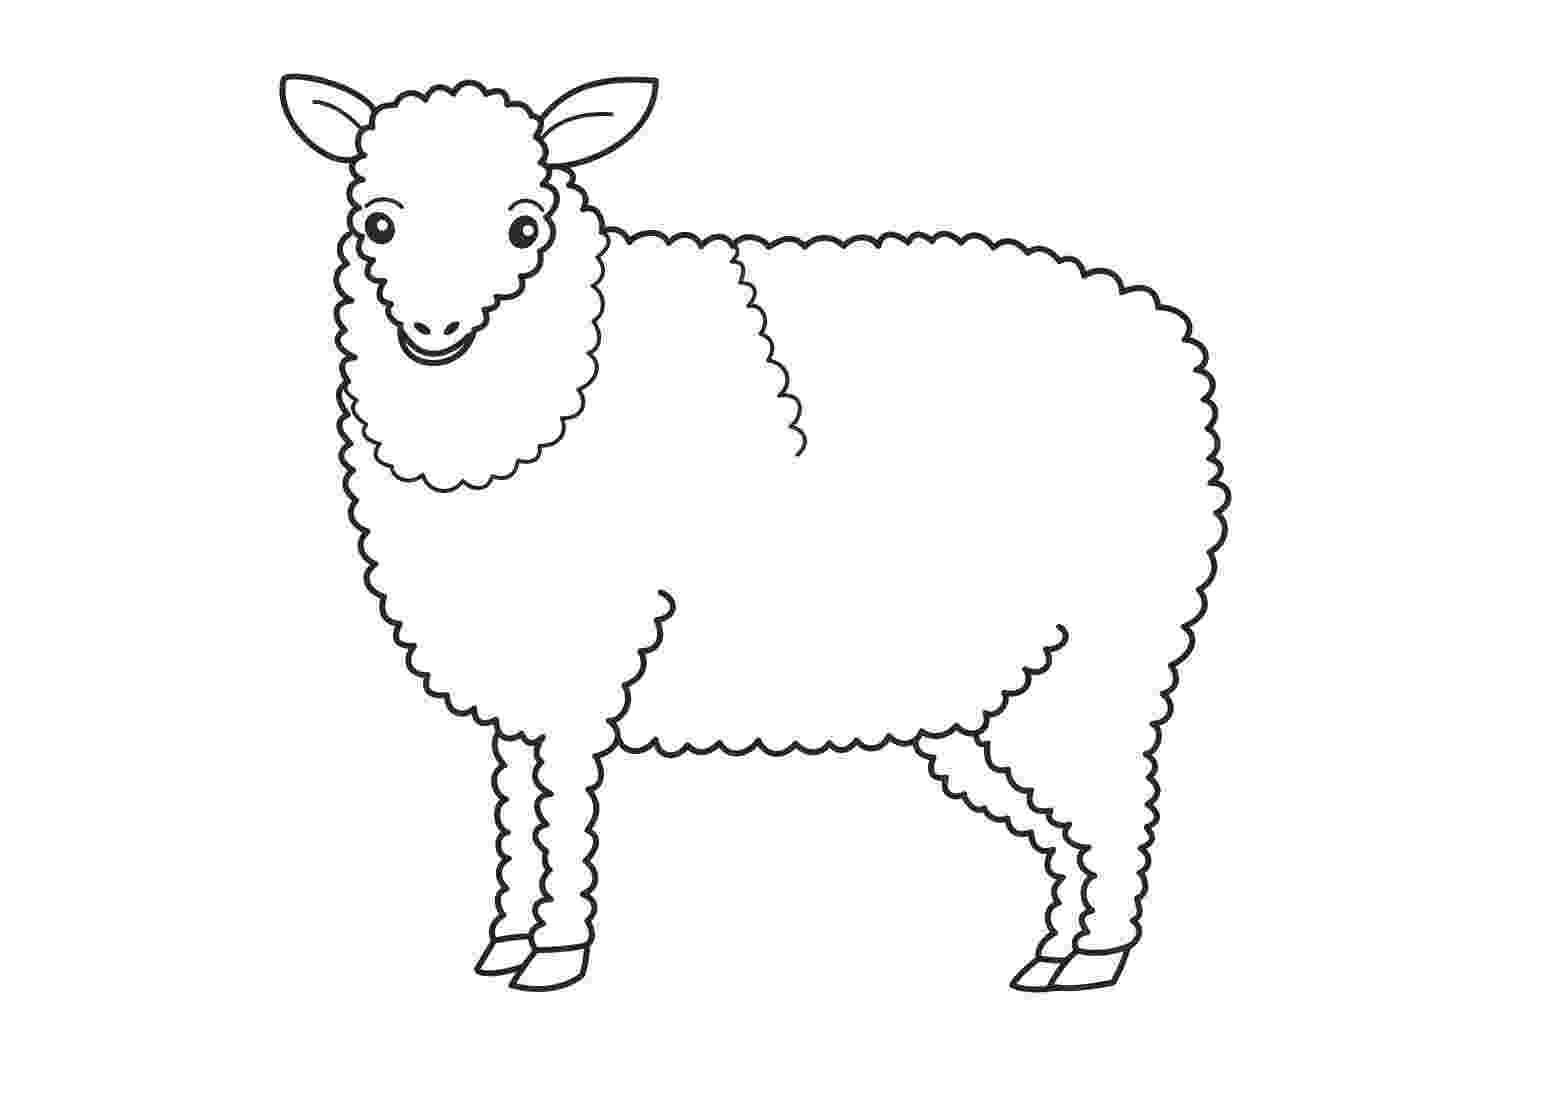 coloring book pages sheep free printable sheep face coloring pages for kids cool2bkids book coloring pages sheep